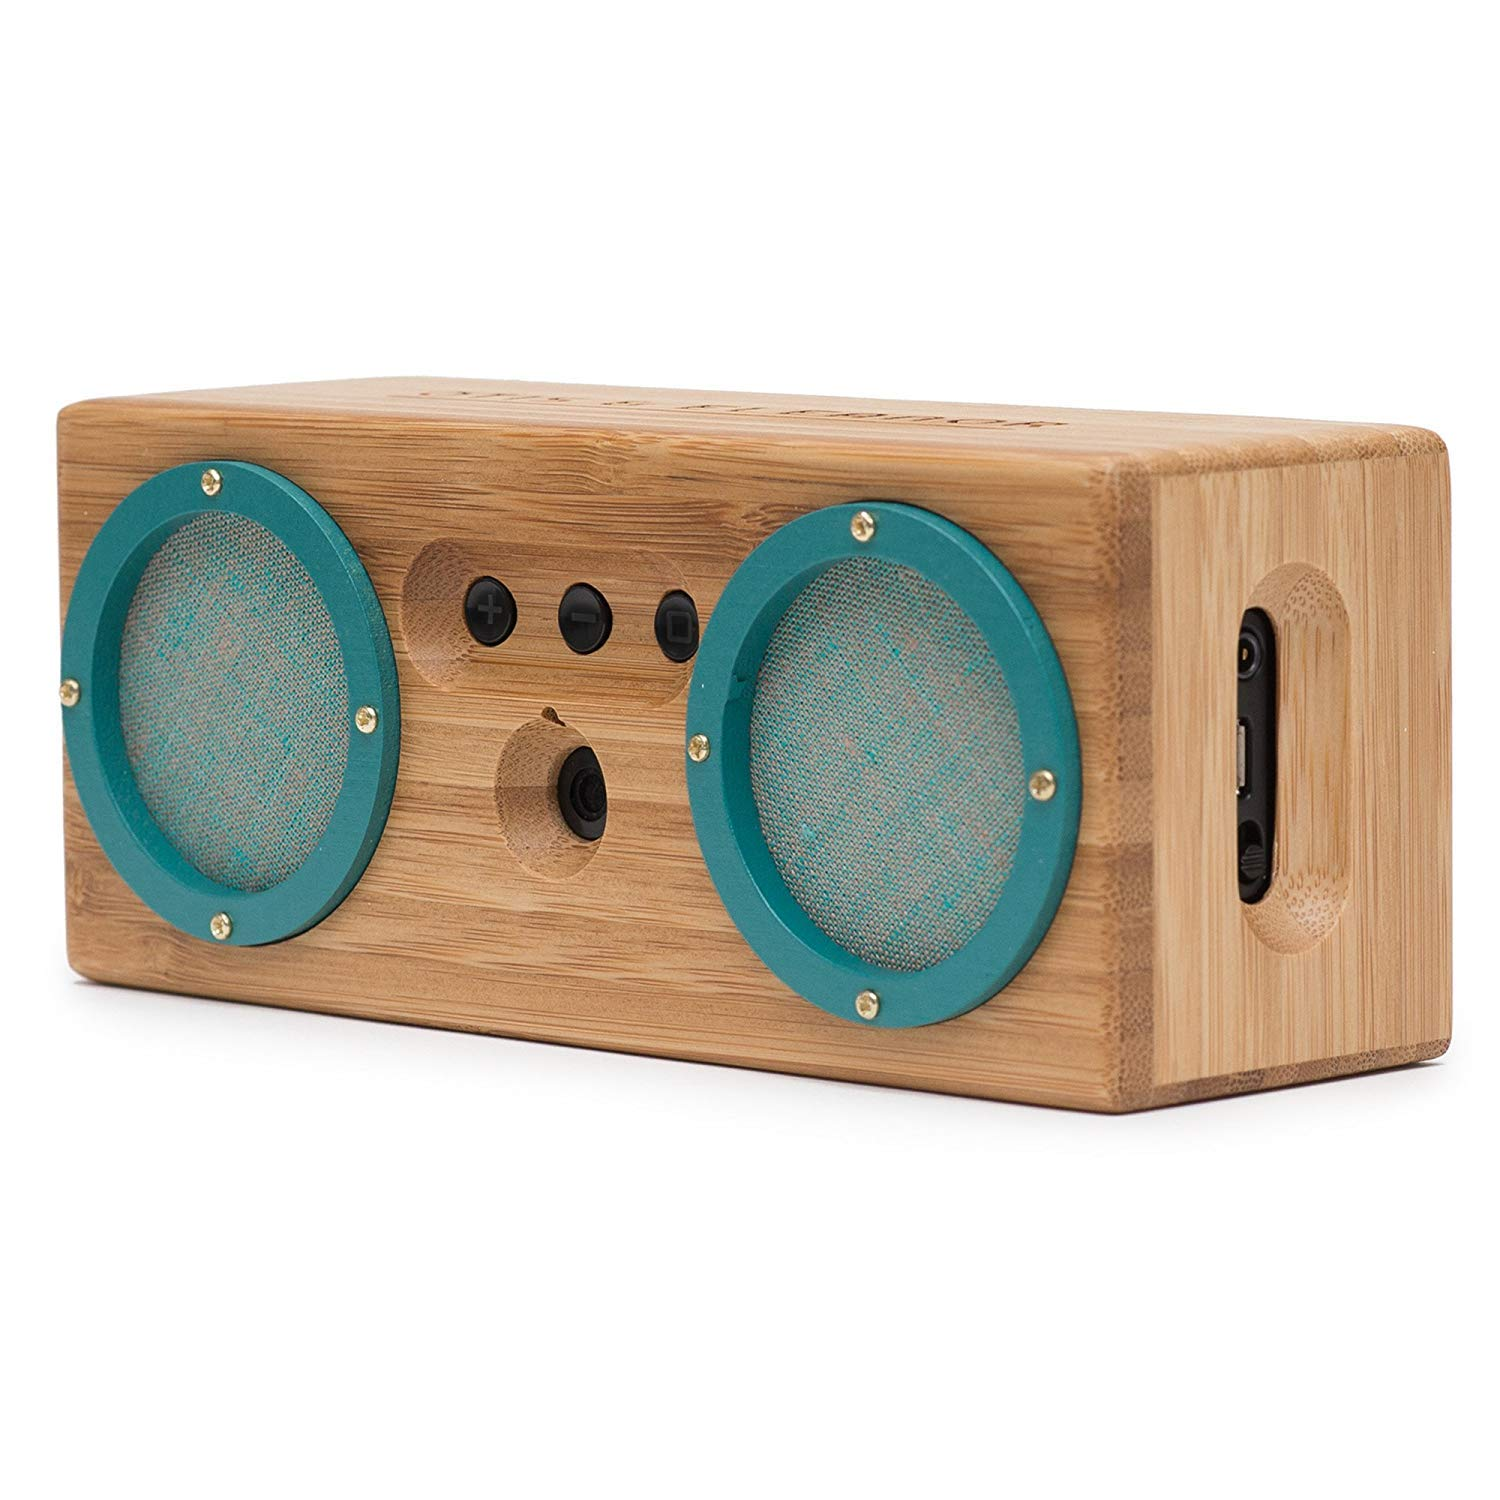 BONGO Wood Bluetooth Speakers, Retro Handcrafted Bamboo Portable Wireless Speaker for Travel, Home, Shower, Beach, Kitchen, Outdoors, Loud Bass with Dual Passive Woofers   Vintage Green